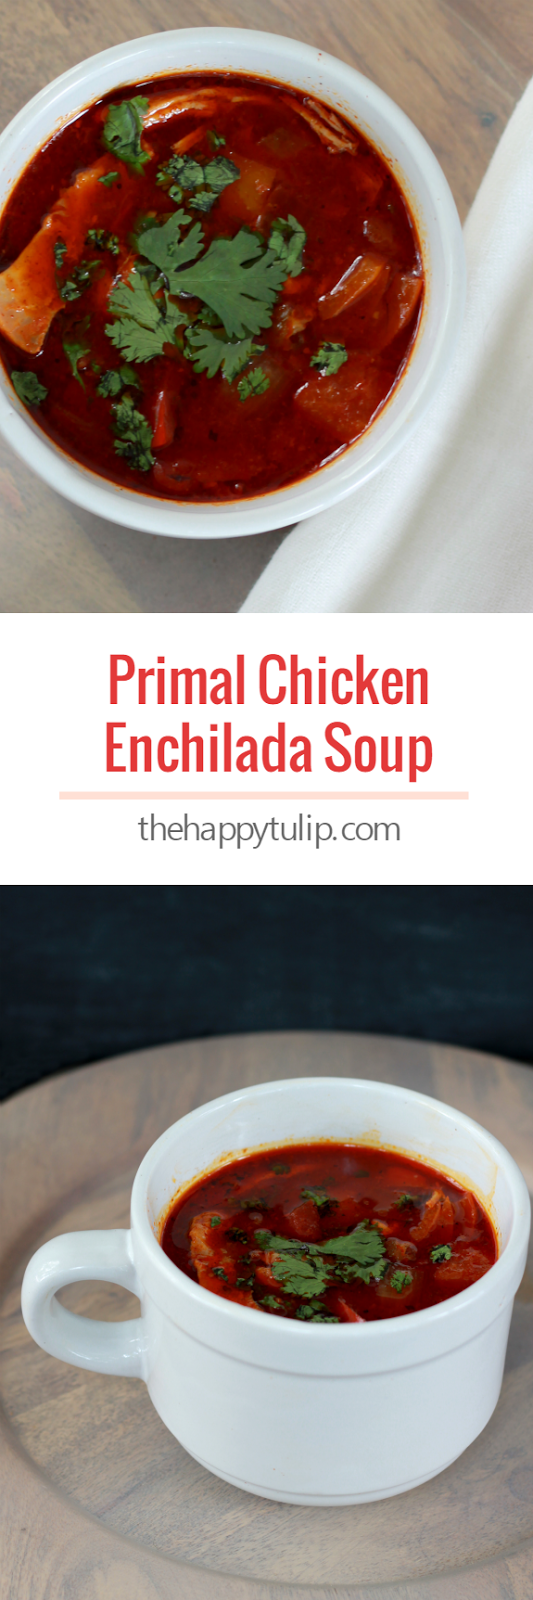 primal chicken enchilada soup with homemade primal enchilada sauce